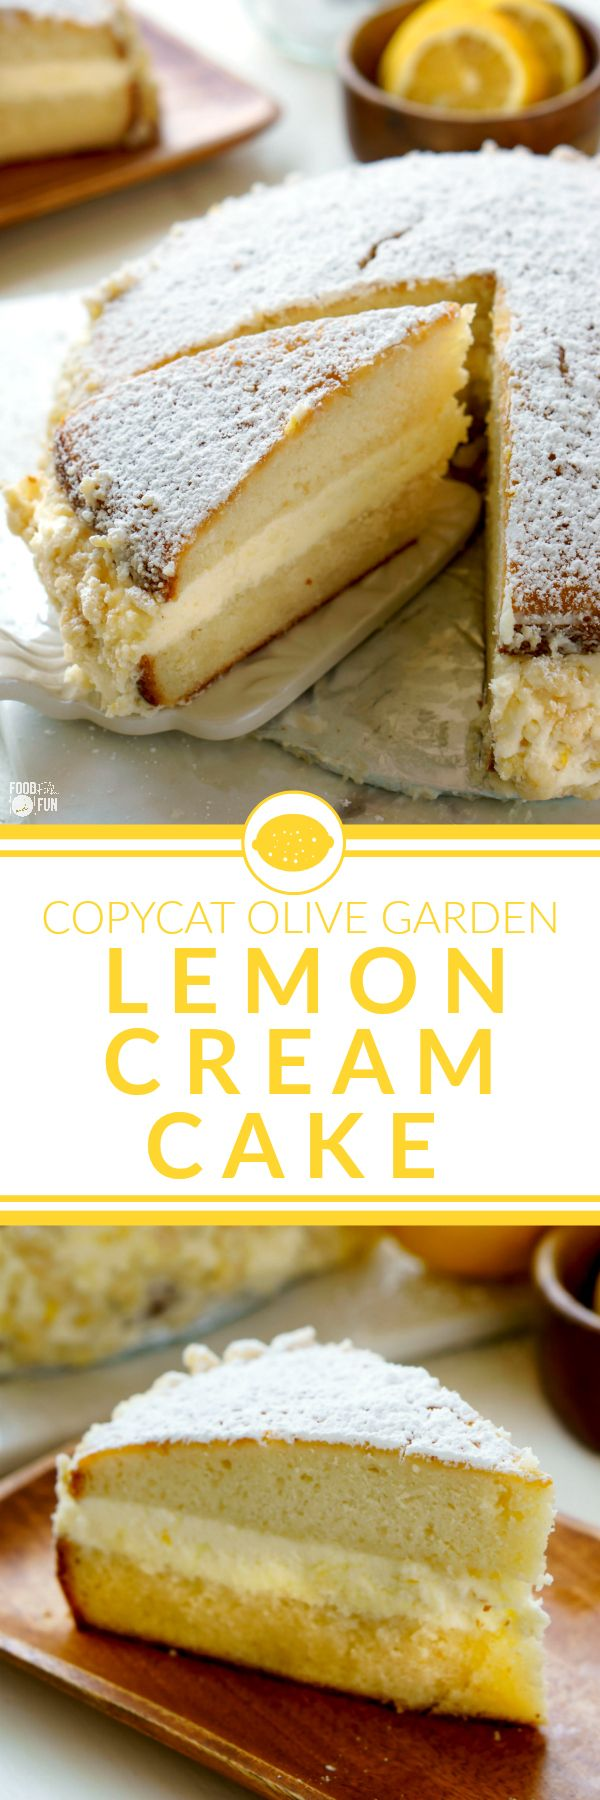 This Copycat Olive Garden Lemon Cream Cake is completely homemade, and is every bit as good as the original—and dare I say, even better! | Lemon Dessert | Lemon Cake | Olive Garden Copycat | Easter Recipe | Easter dessert Recipe